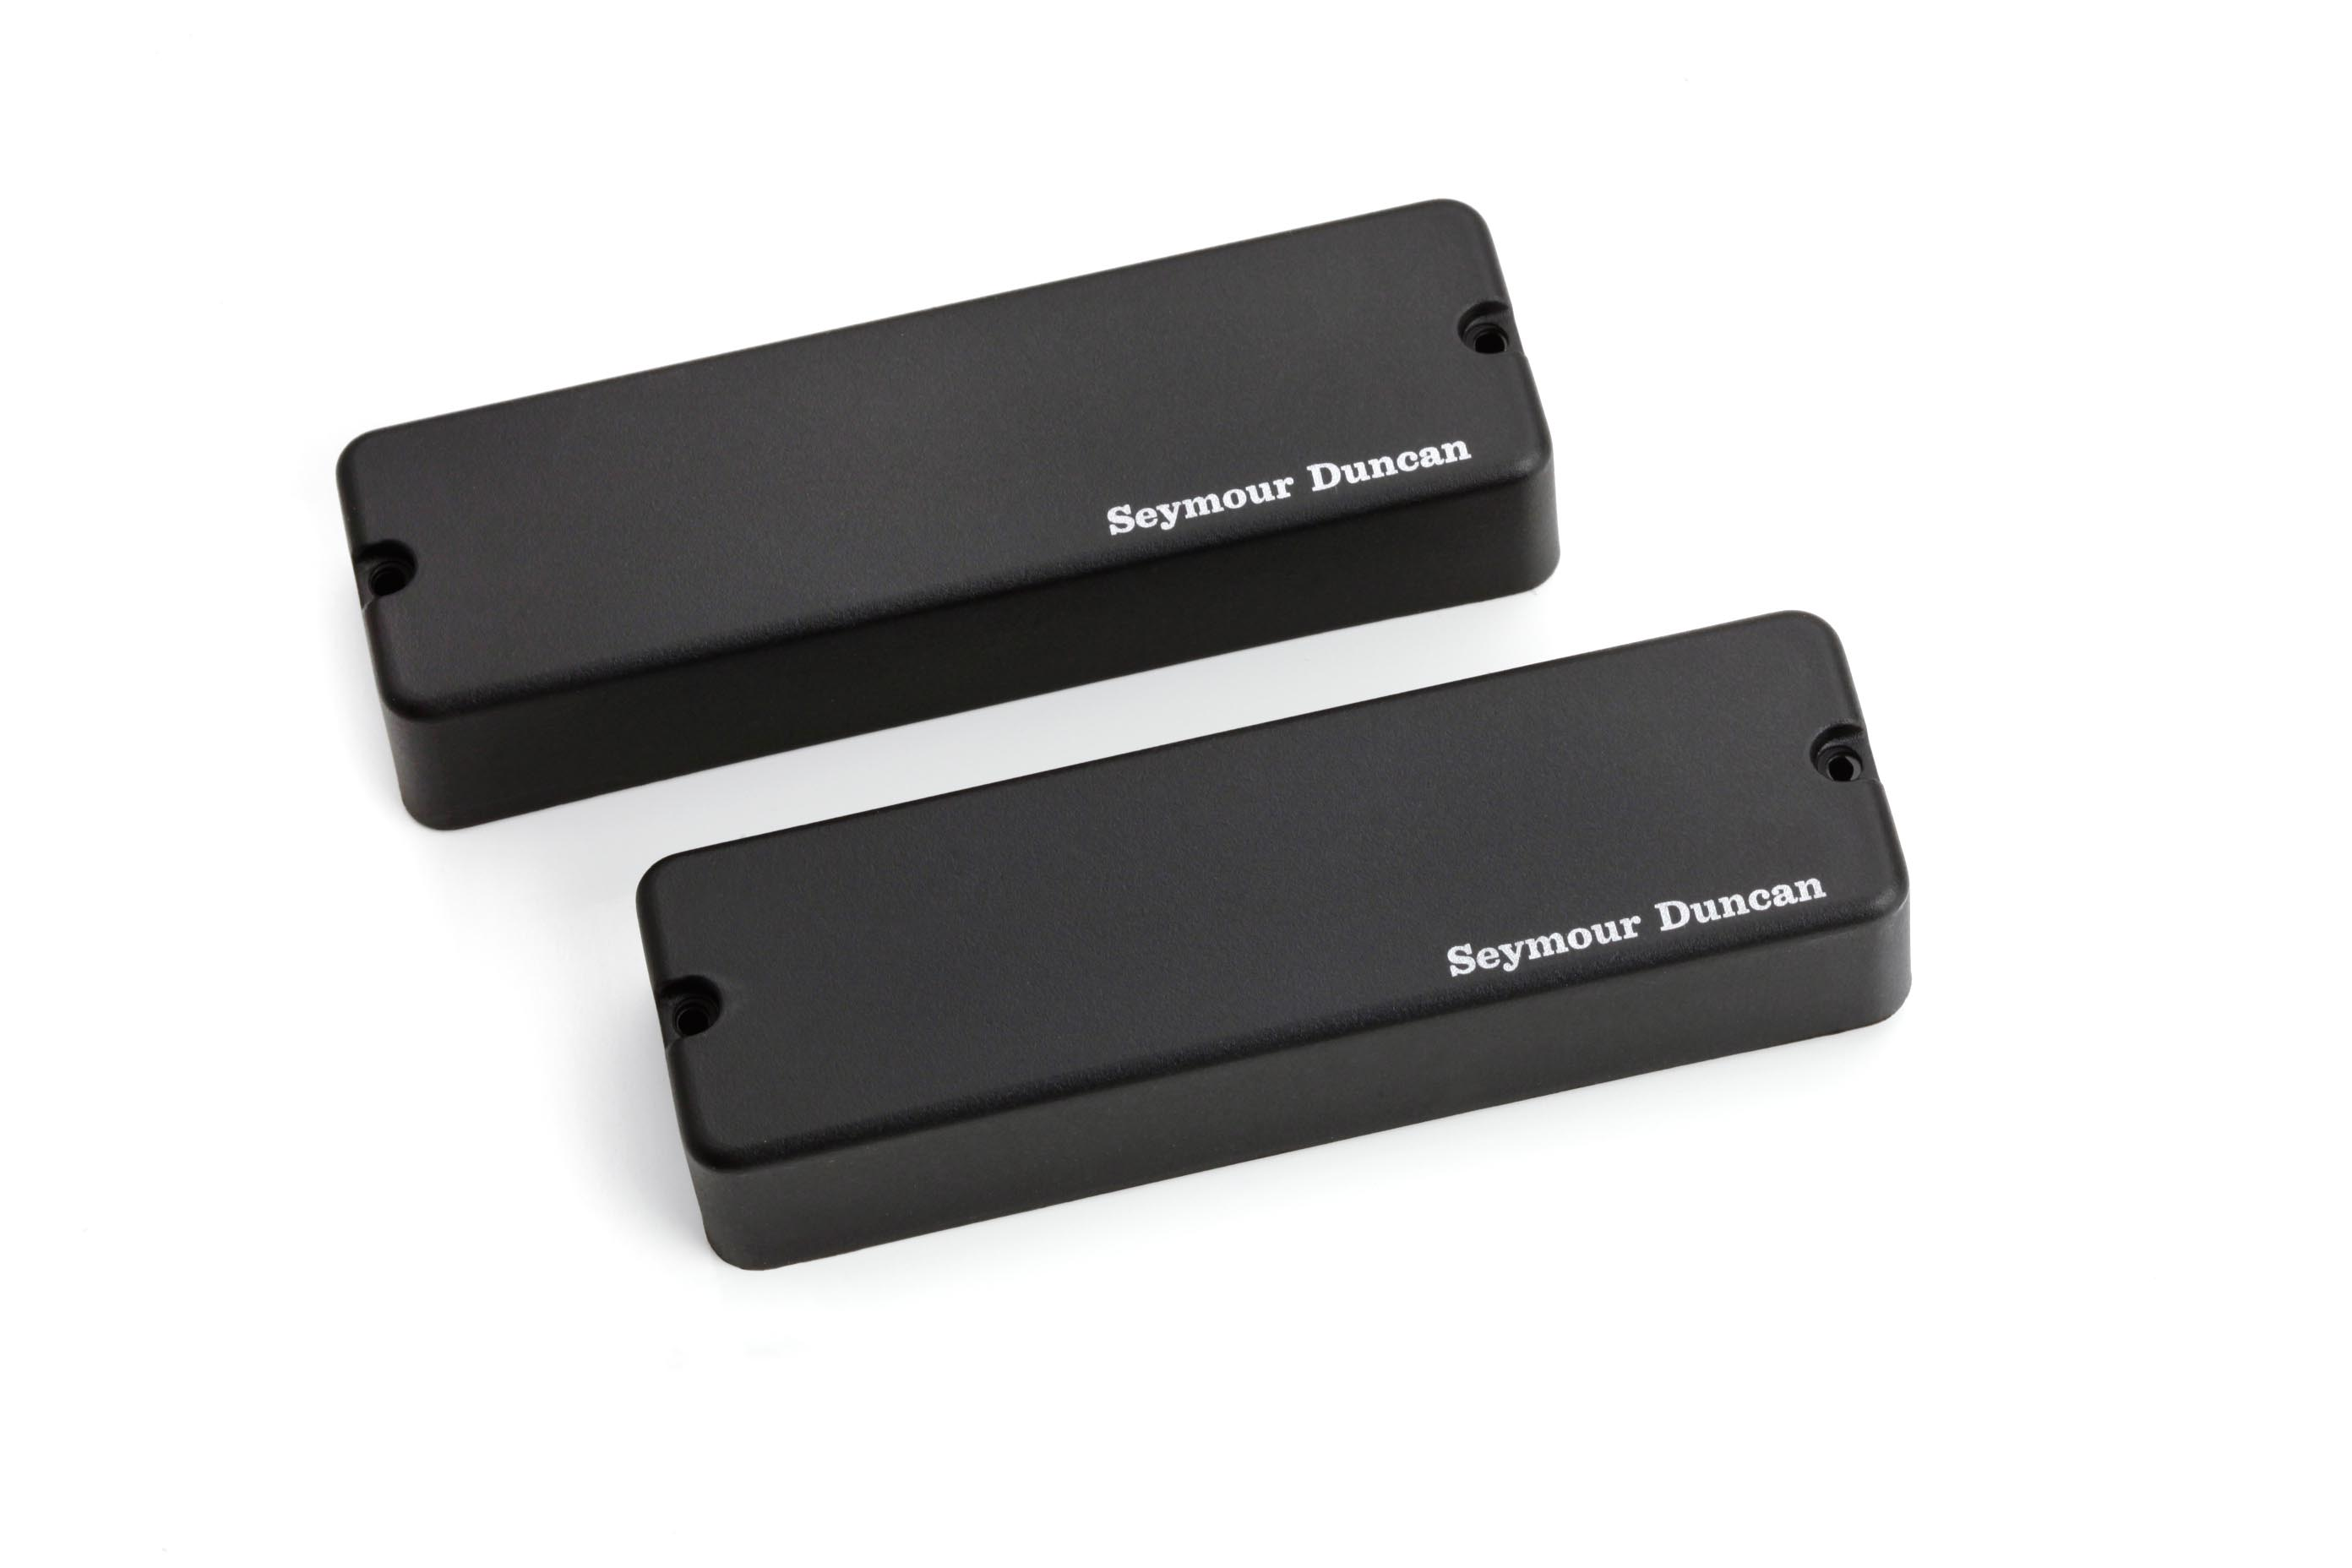 seymour duncan asb5 phase i active soabpar pickup best bass gear. Black Bedroom Furniture Sets. Home Design Ideas